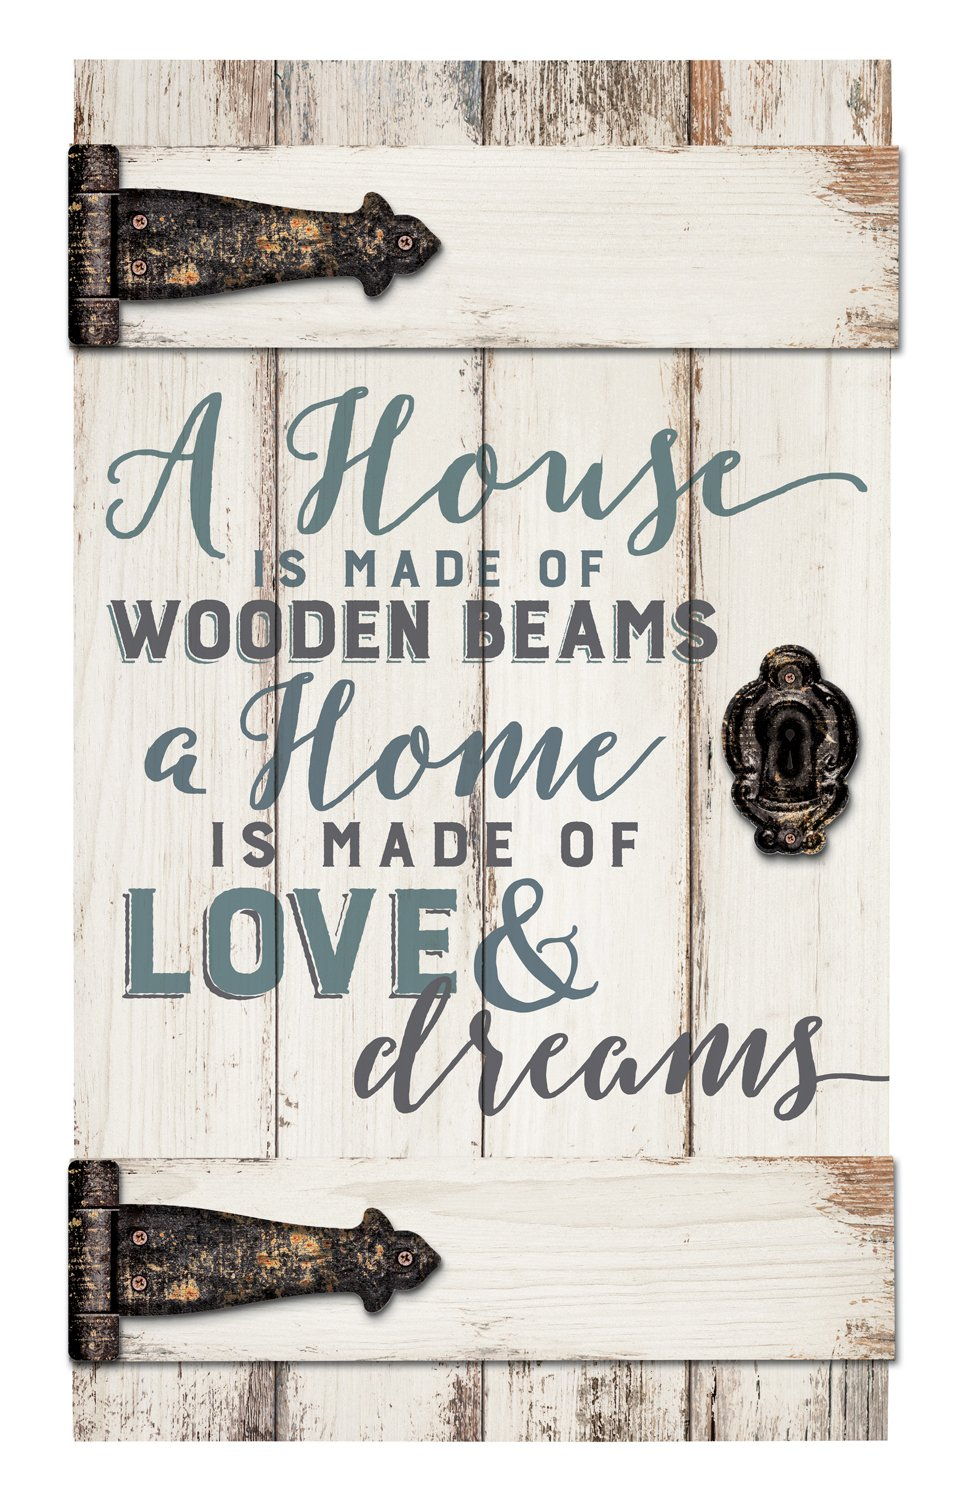 House Is Made Of Wooden Beams White 14 x 24 Inch Solid Pine Wood Barn Door Wall Plaque Sign